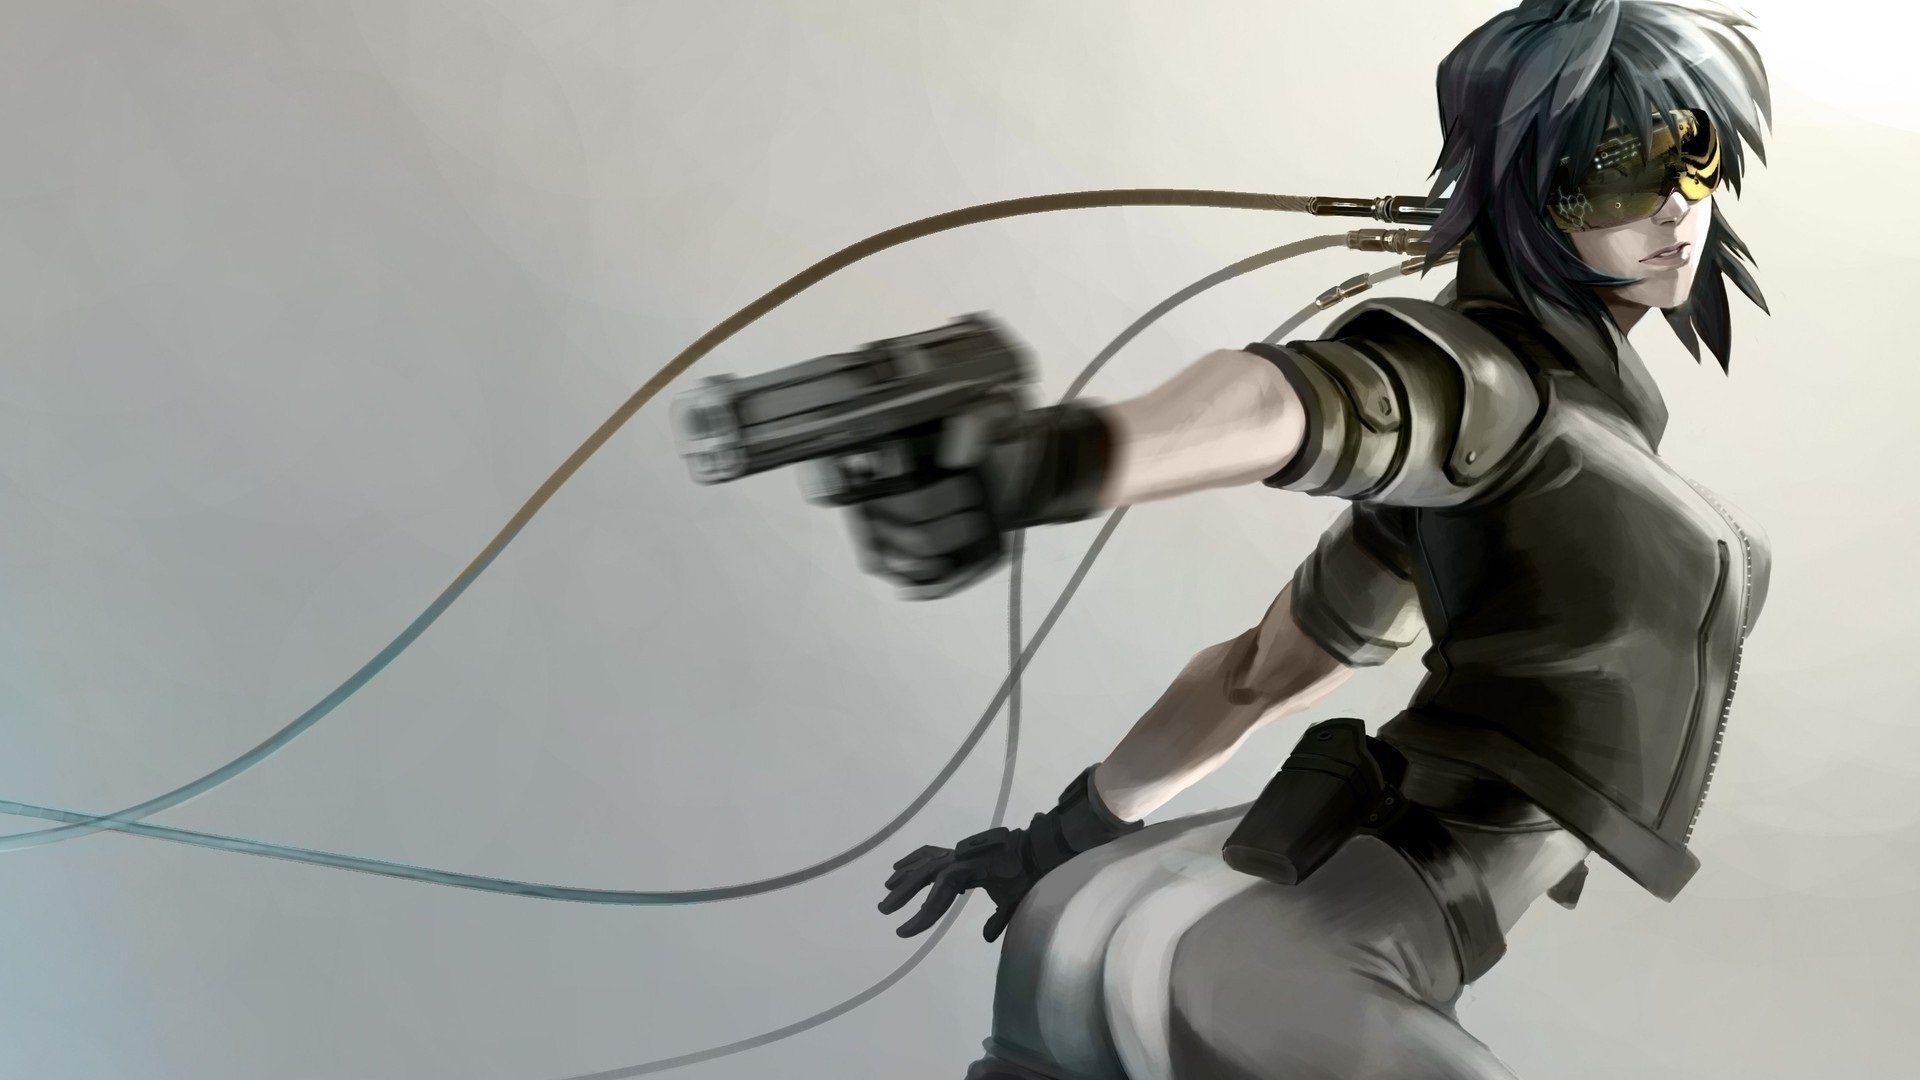 213 Ghost In The Shell Hd Wallpapers Background Images Wallpaper Abyss